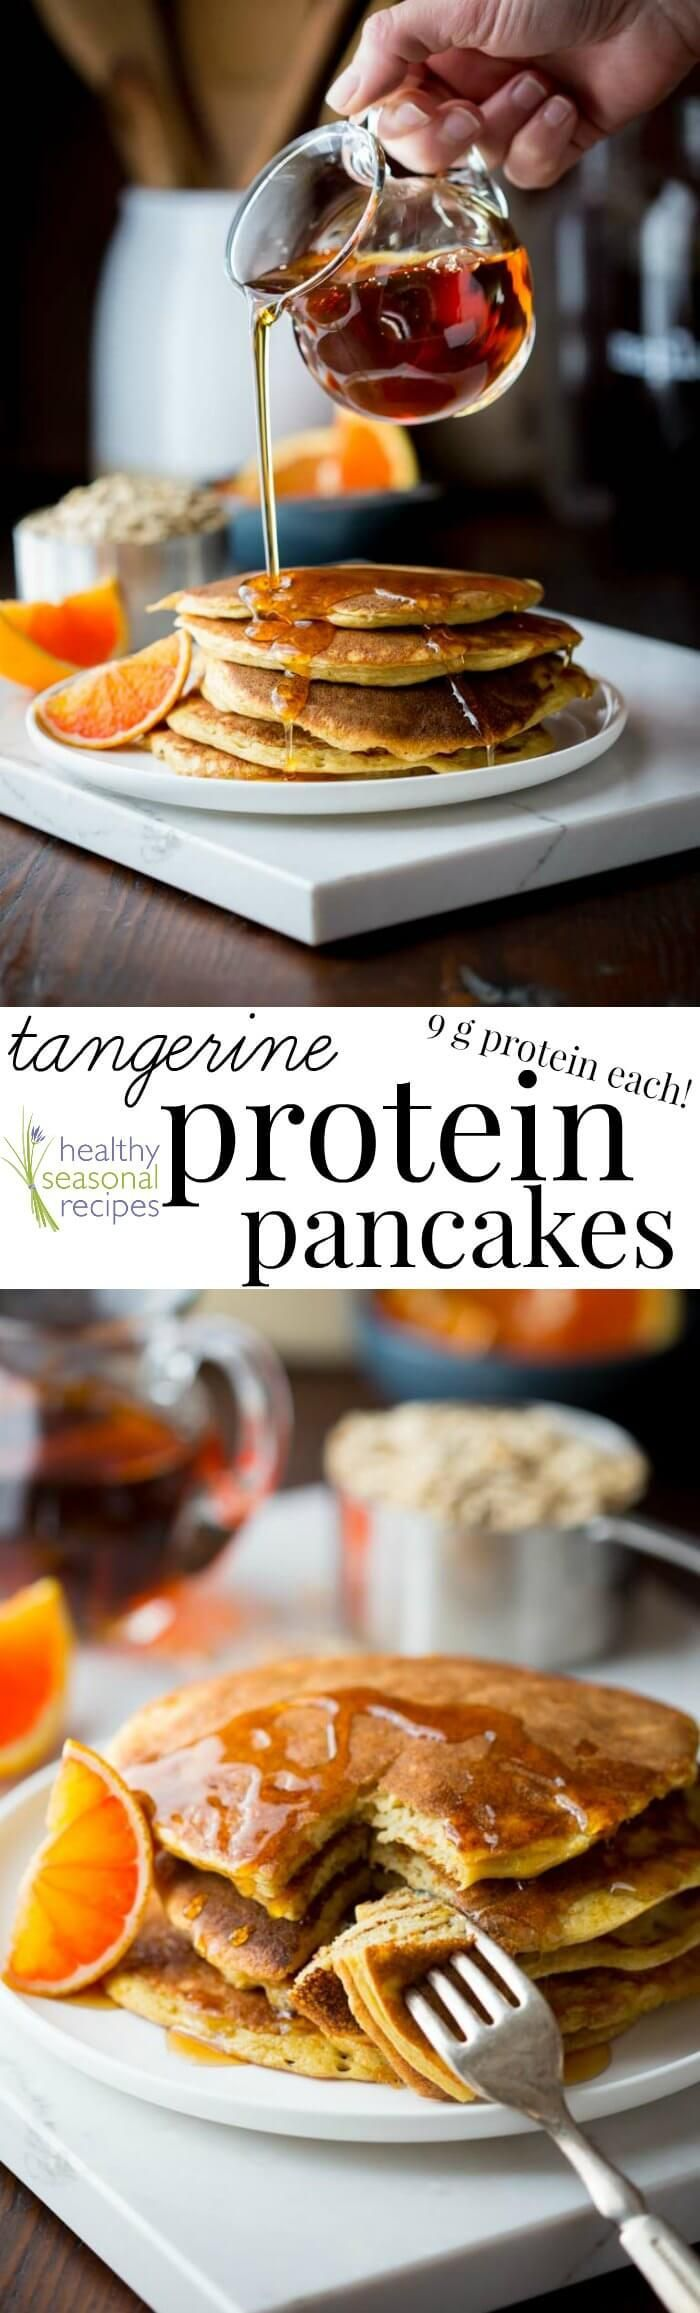 Gluten-free Tangerine Protein Pancakes. 9 grams of protein per pancake. Made with regular grocery store ingredients (like eggs and oats.) And they're super simple to make in a blender! On Healthy Seasonal Recipes by Katie Webster.